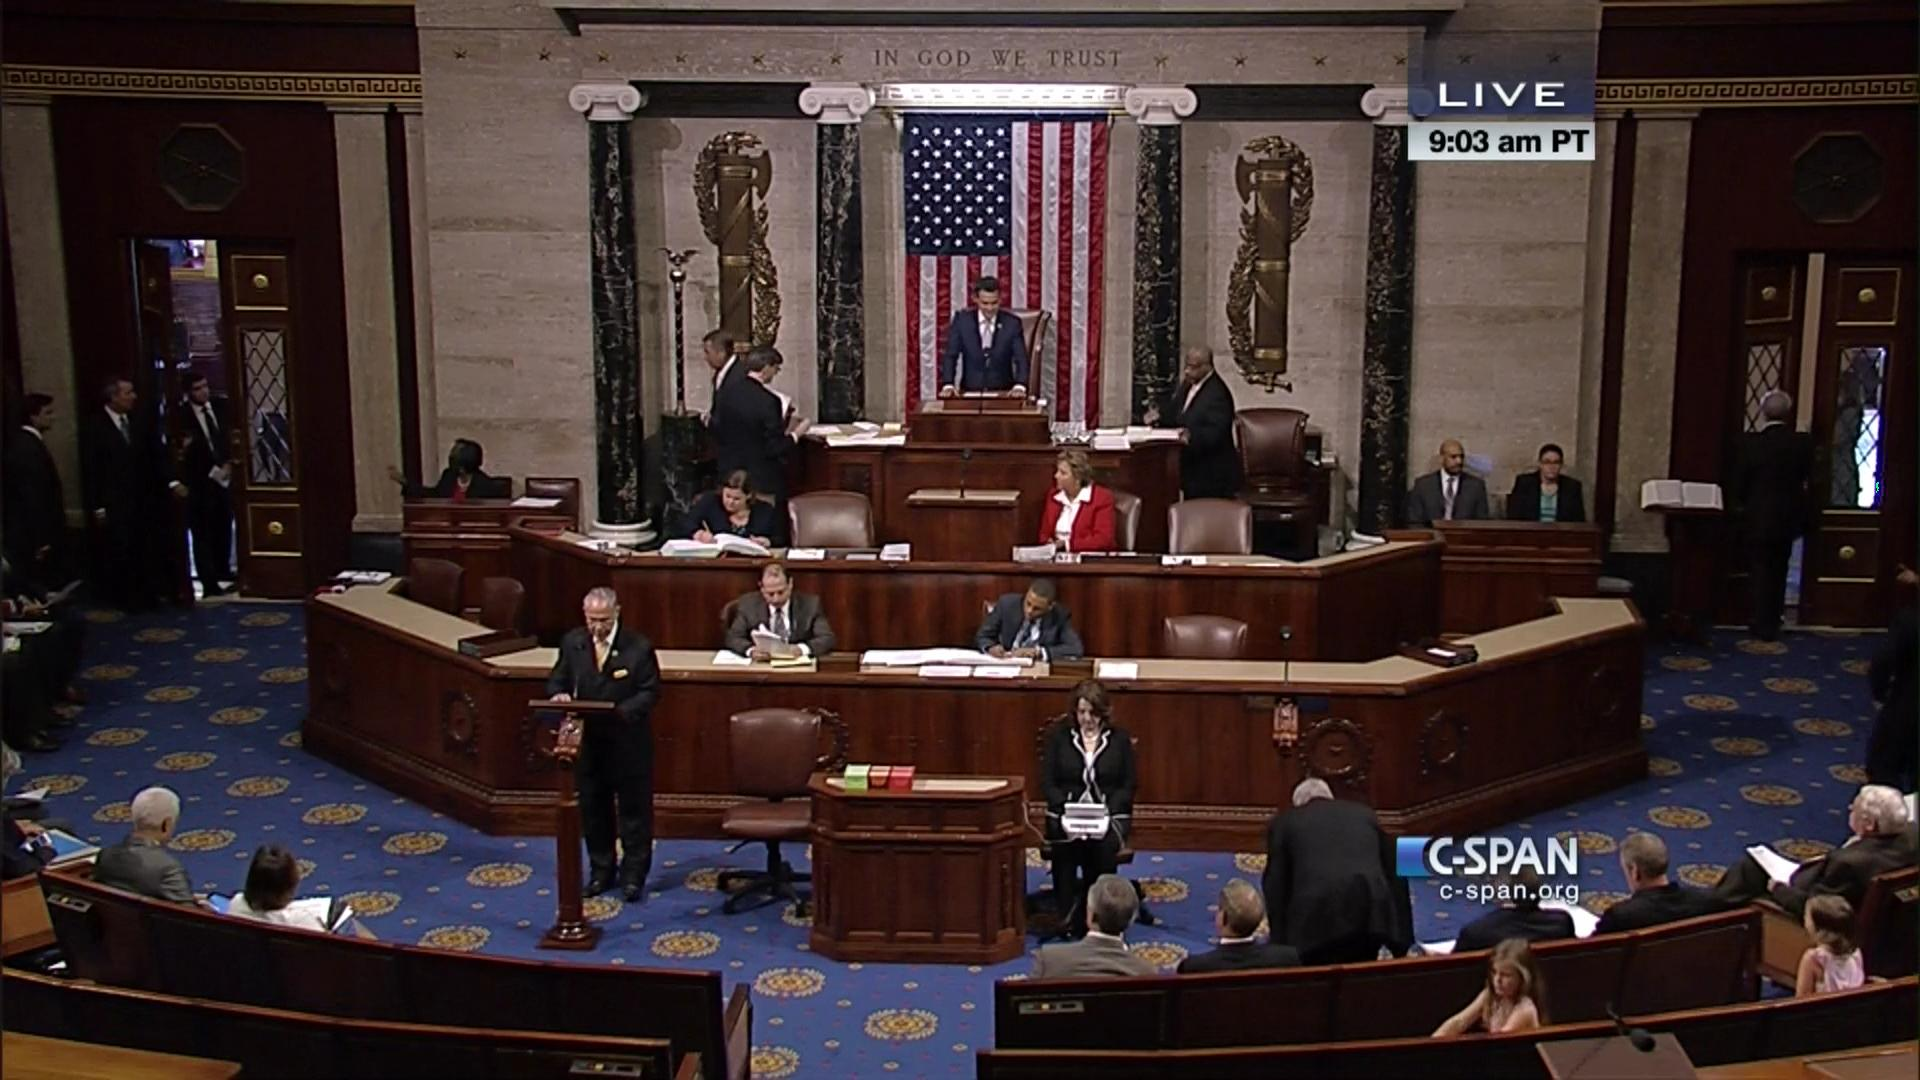 House Session | C-SPAN.org on house drawing, house floor plans, house design, house building plans,